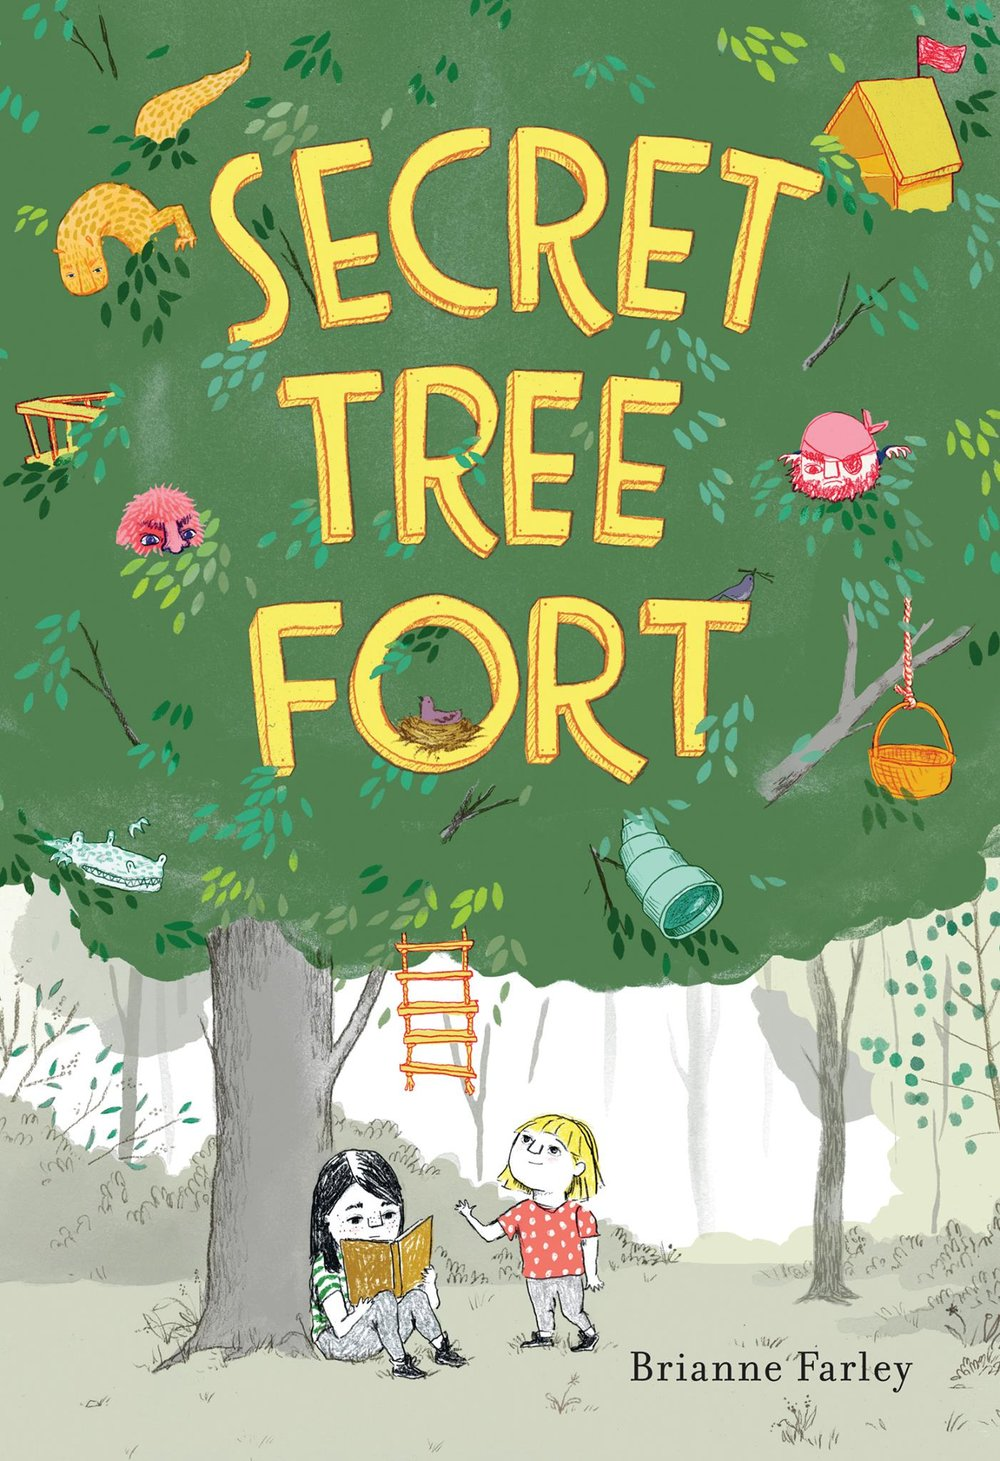 Farley, Brianne 2016_04 - SECRET TREE FORT -  PB - RLM PR.jpg